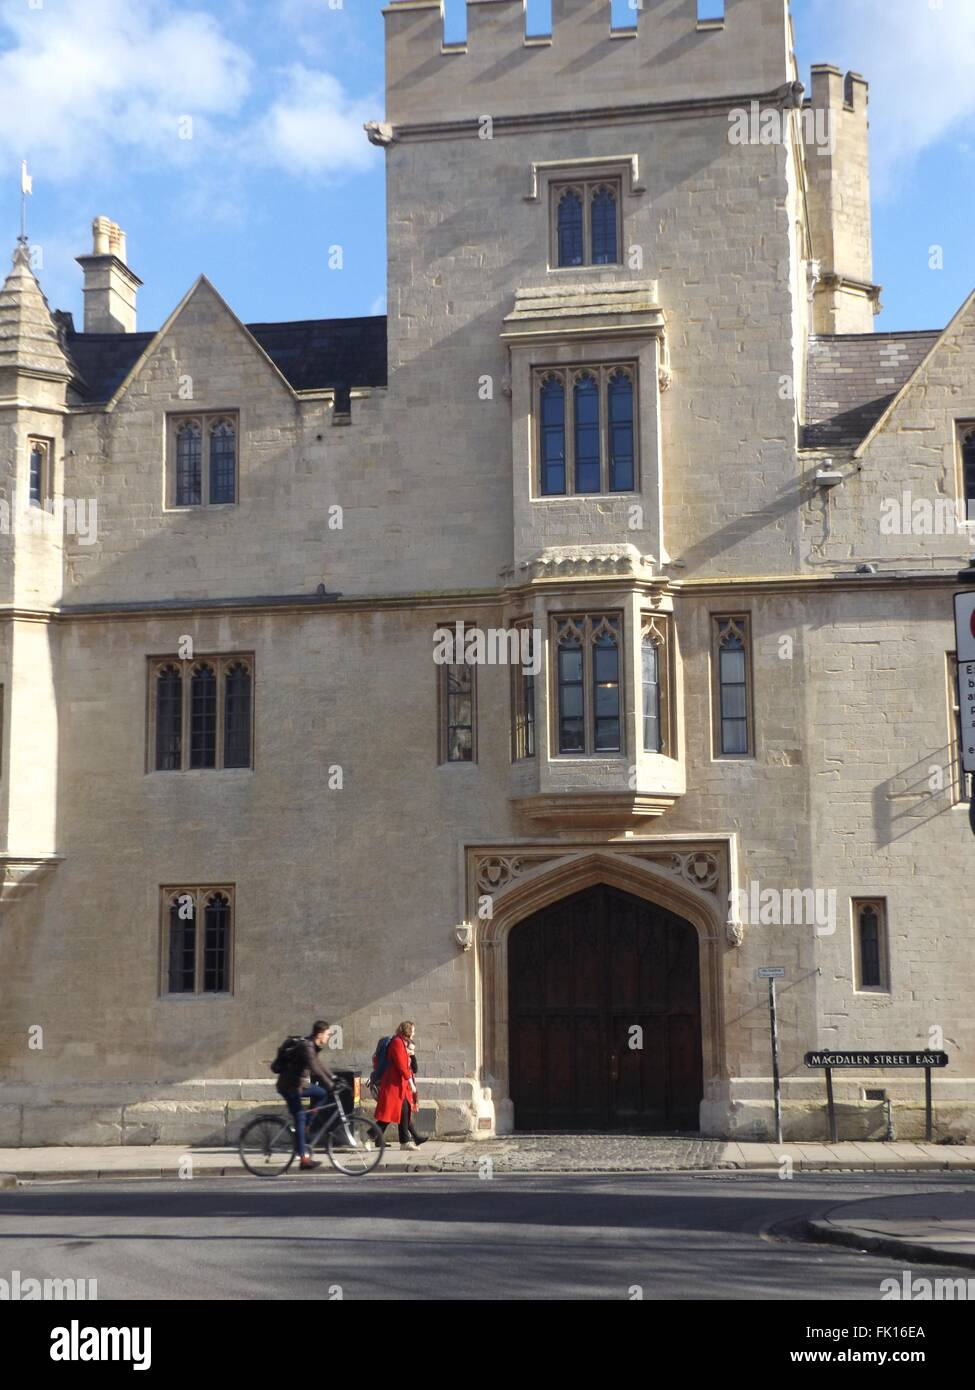 Balliol College, Oxford, UK - Stock Image